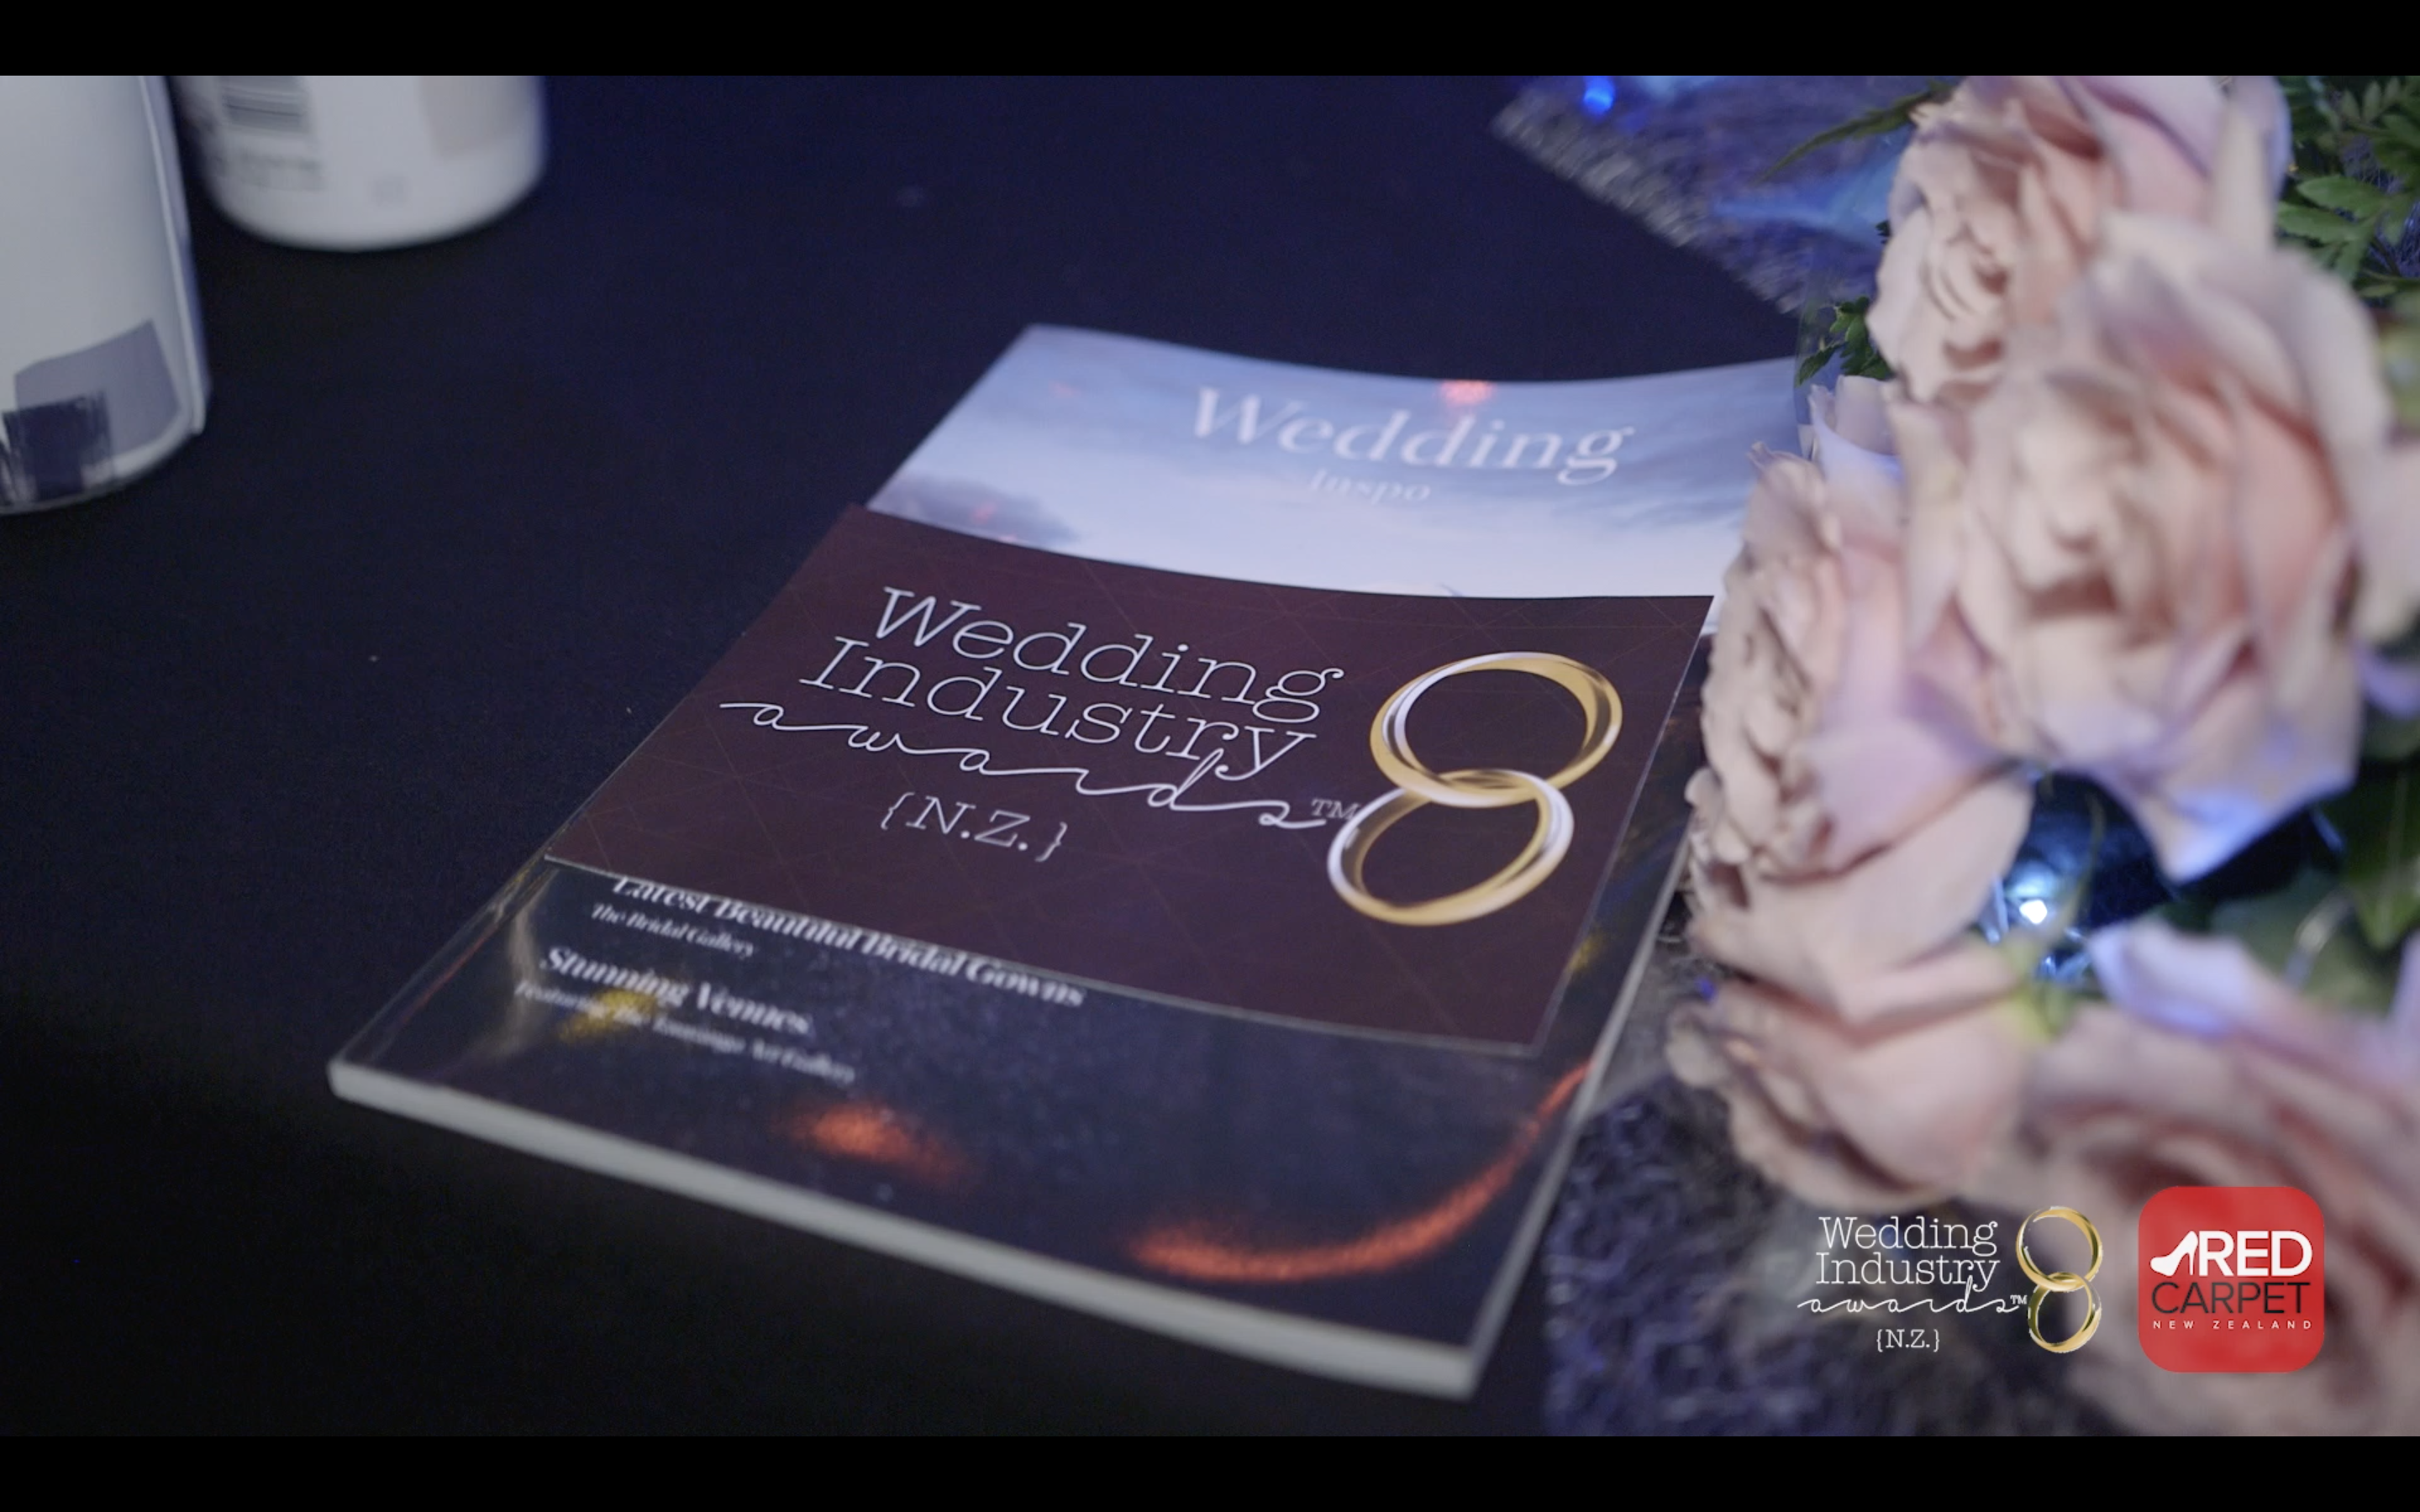 Wedding Industry Awards 2019